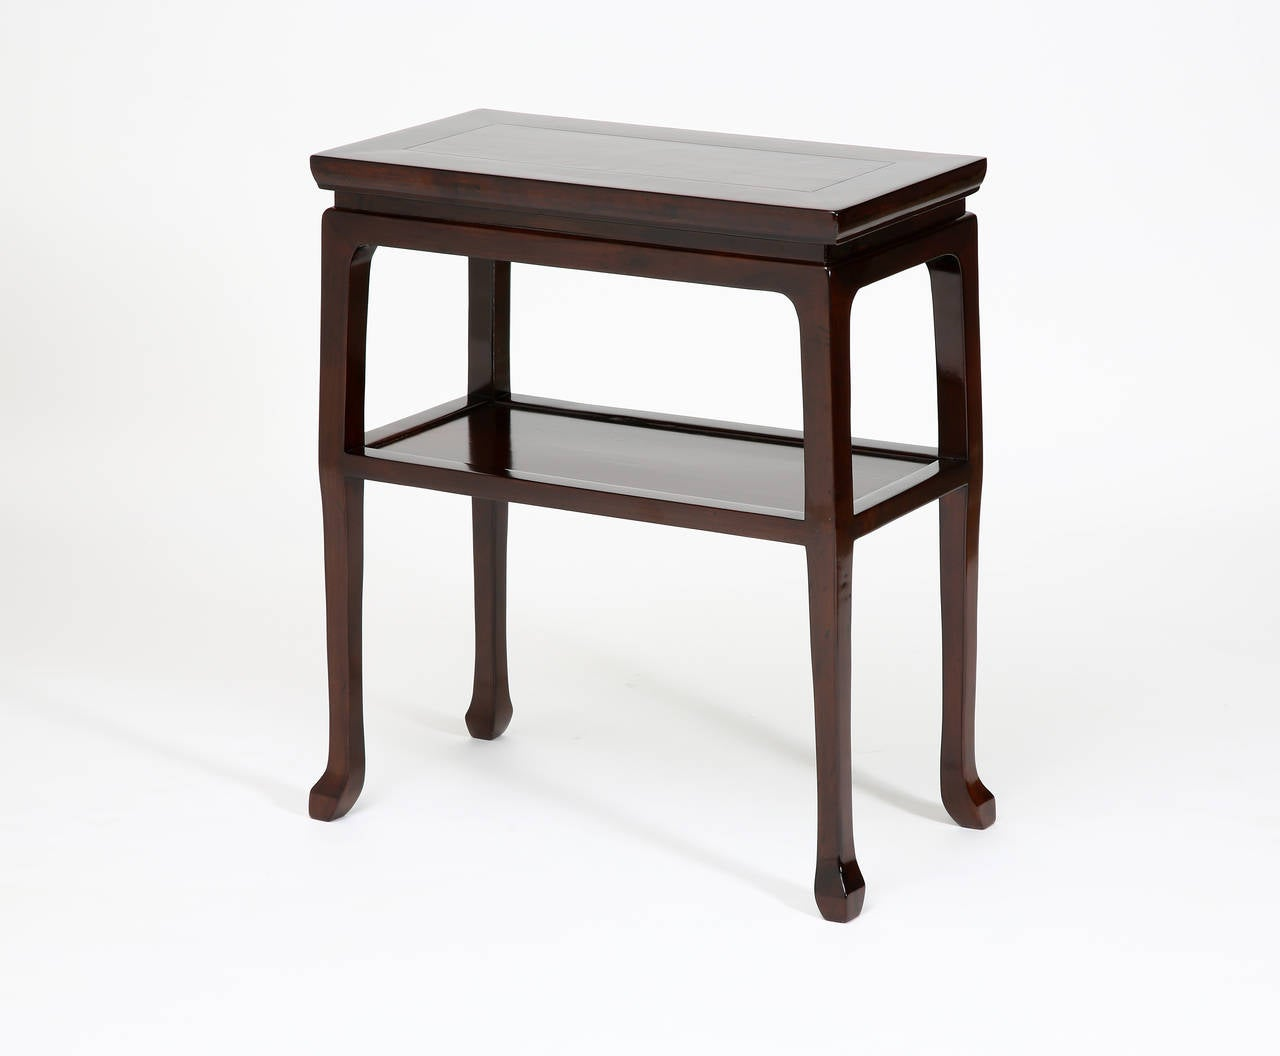 Antique chinese walnut display stand console table with